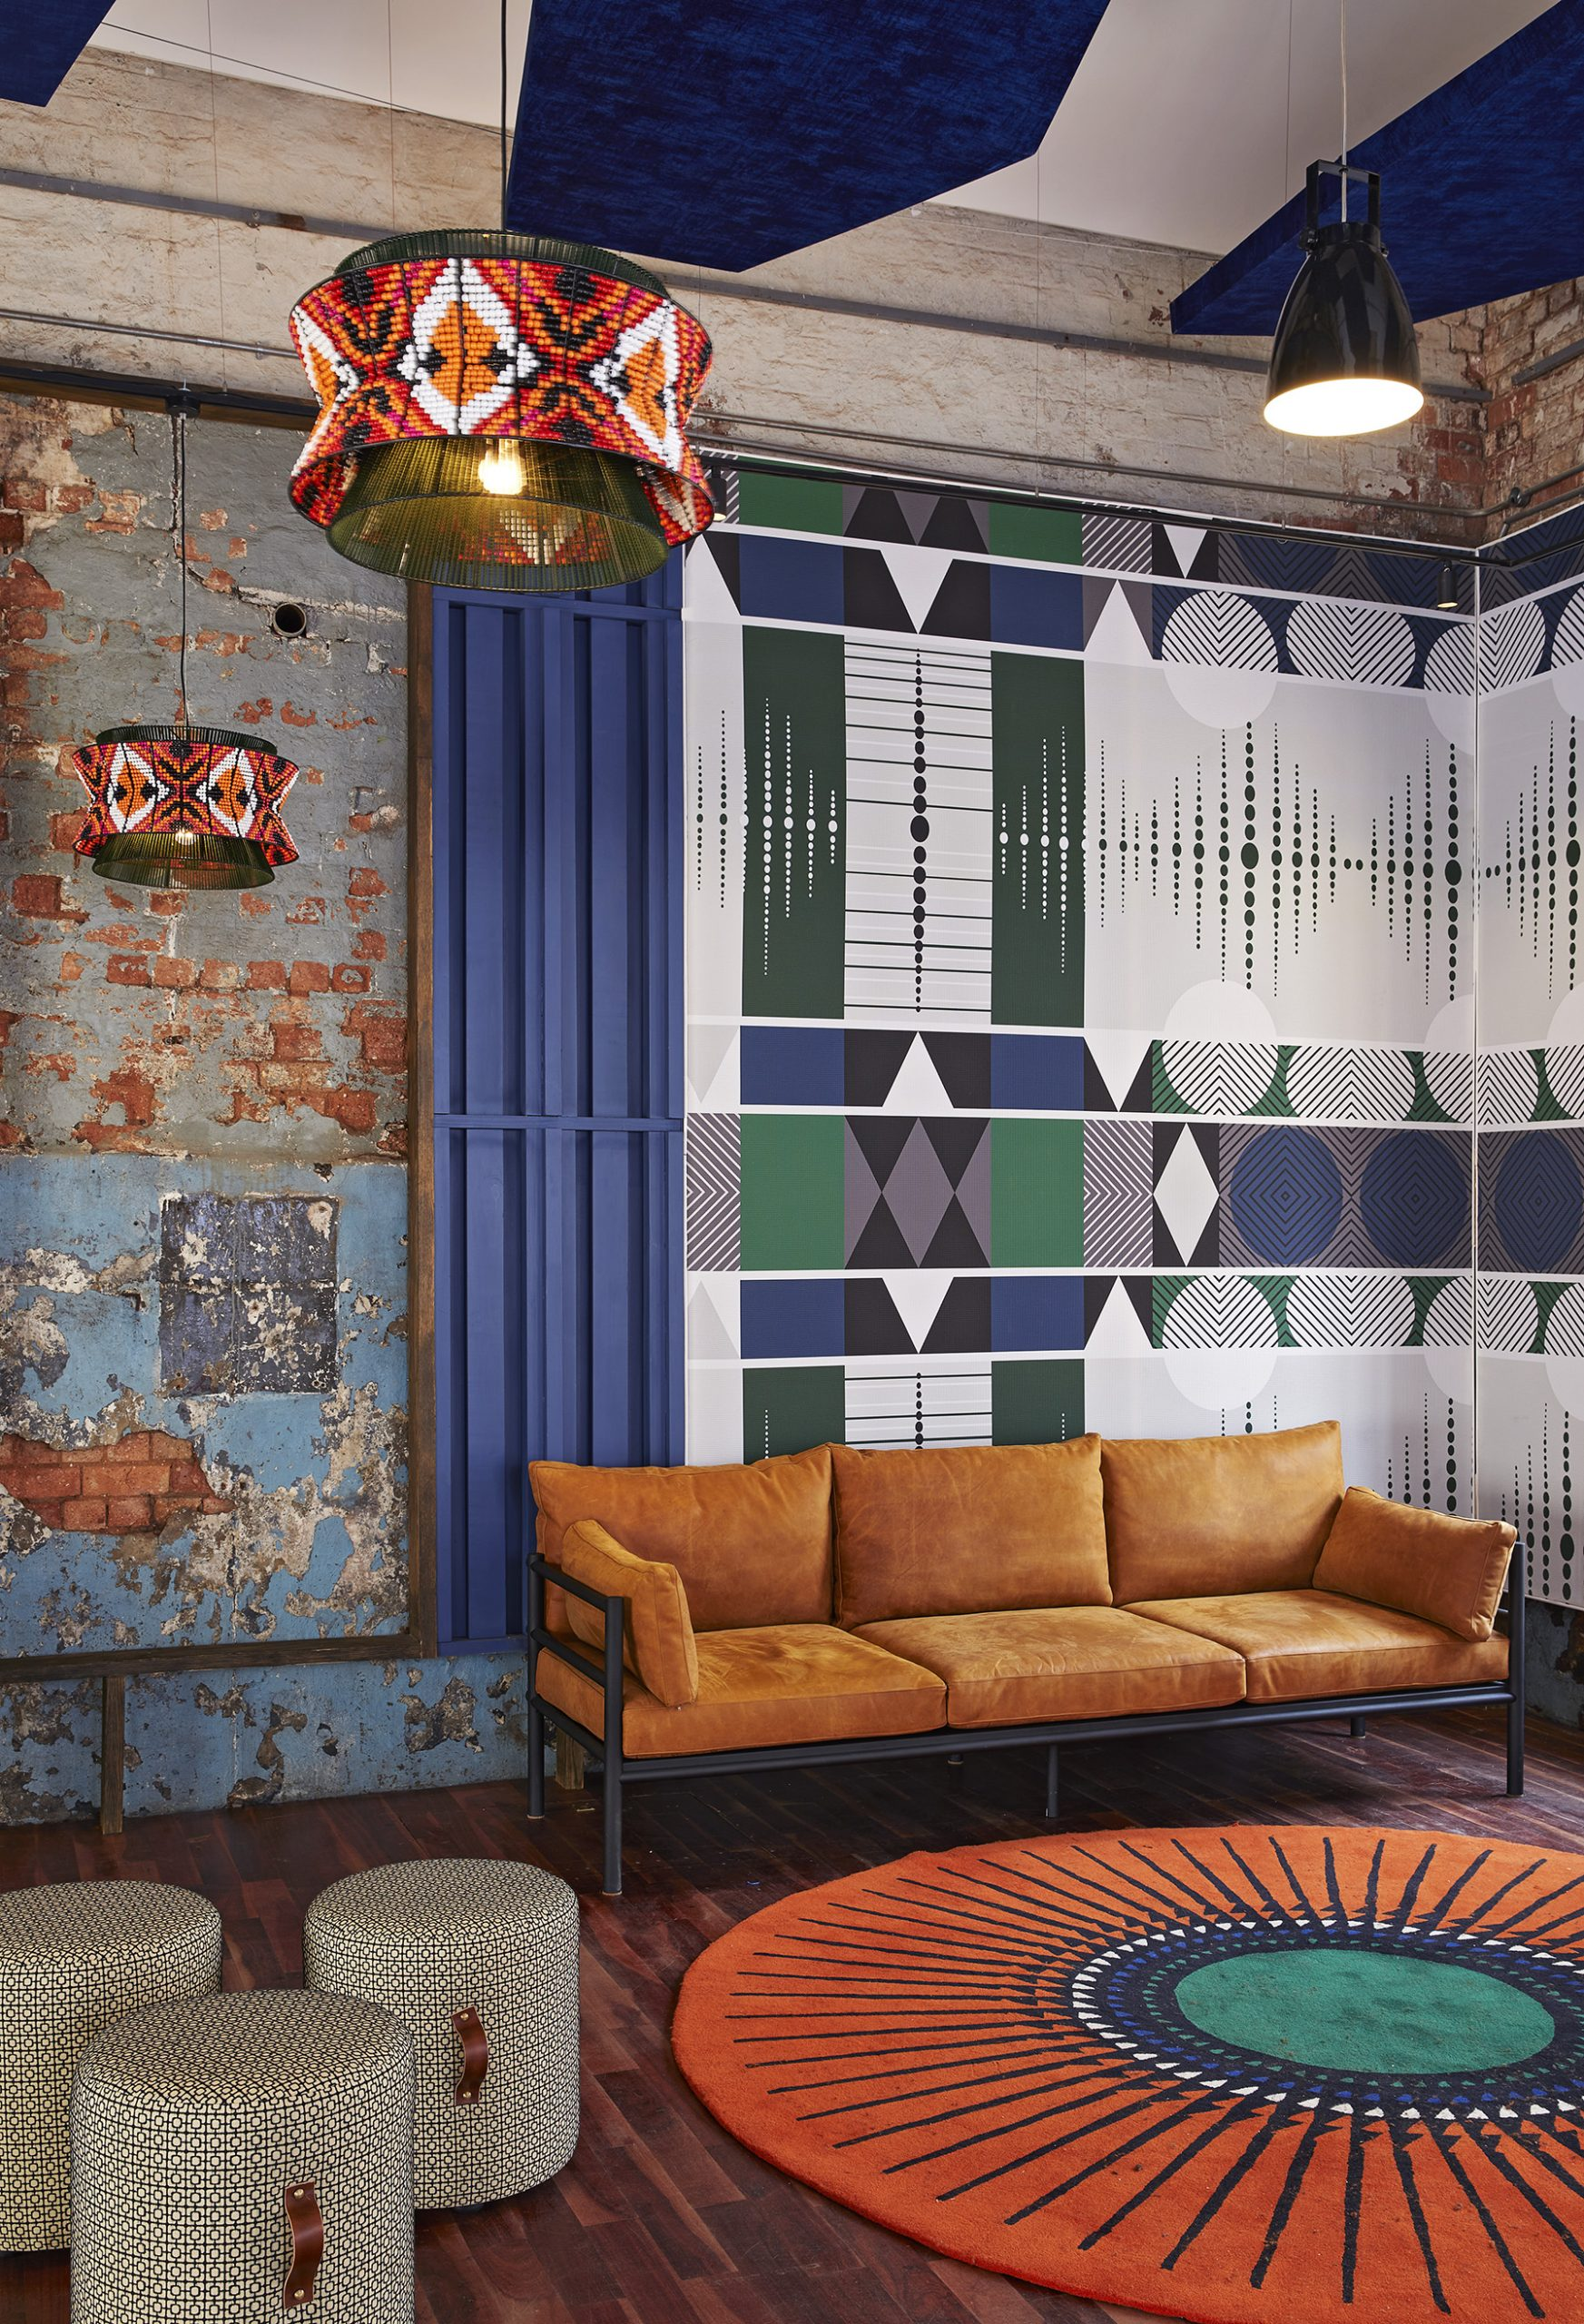 Flame Studios, Constitutional Hill, Johannesburg, South Africa, Interior design, Tribal, Traditional, African, Vibrant, Patterns